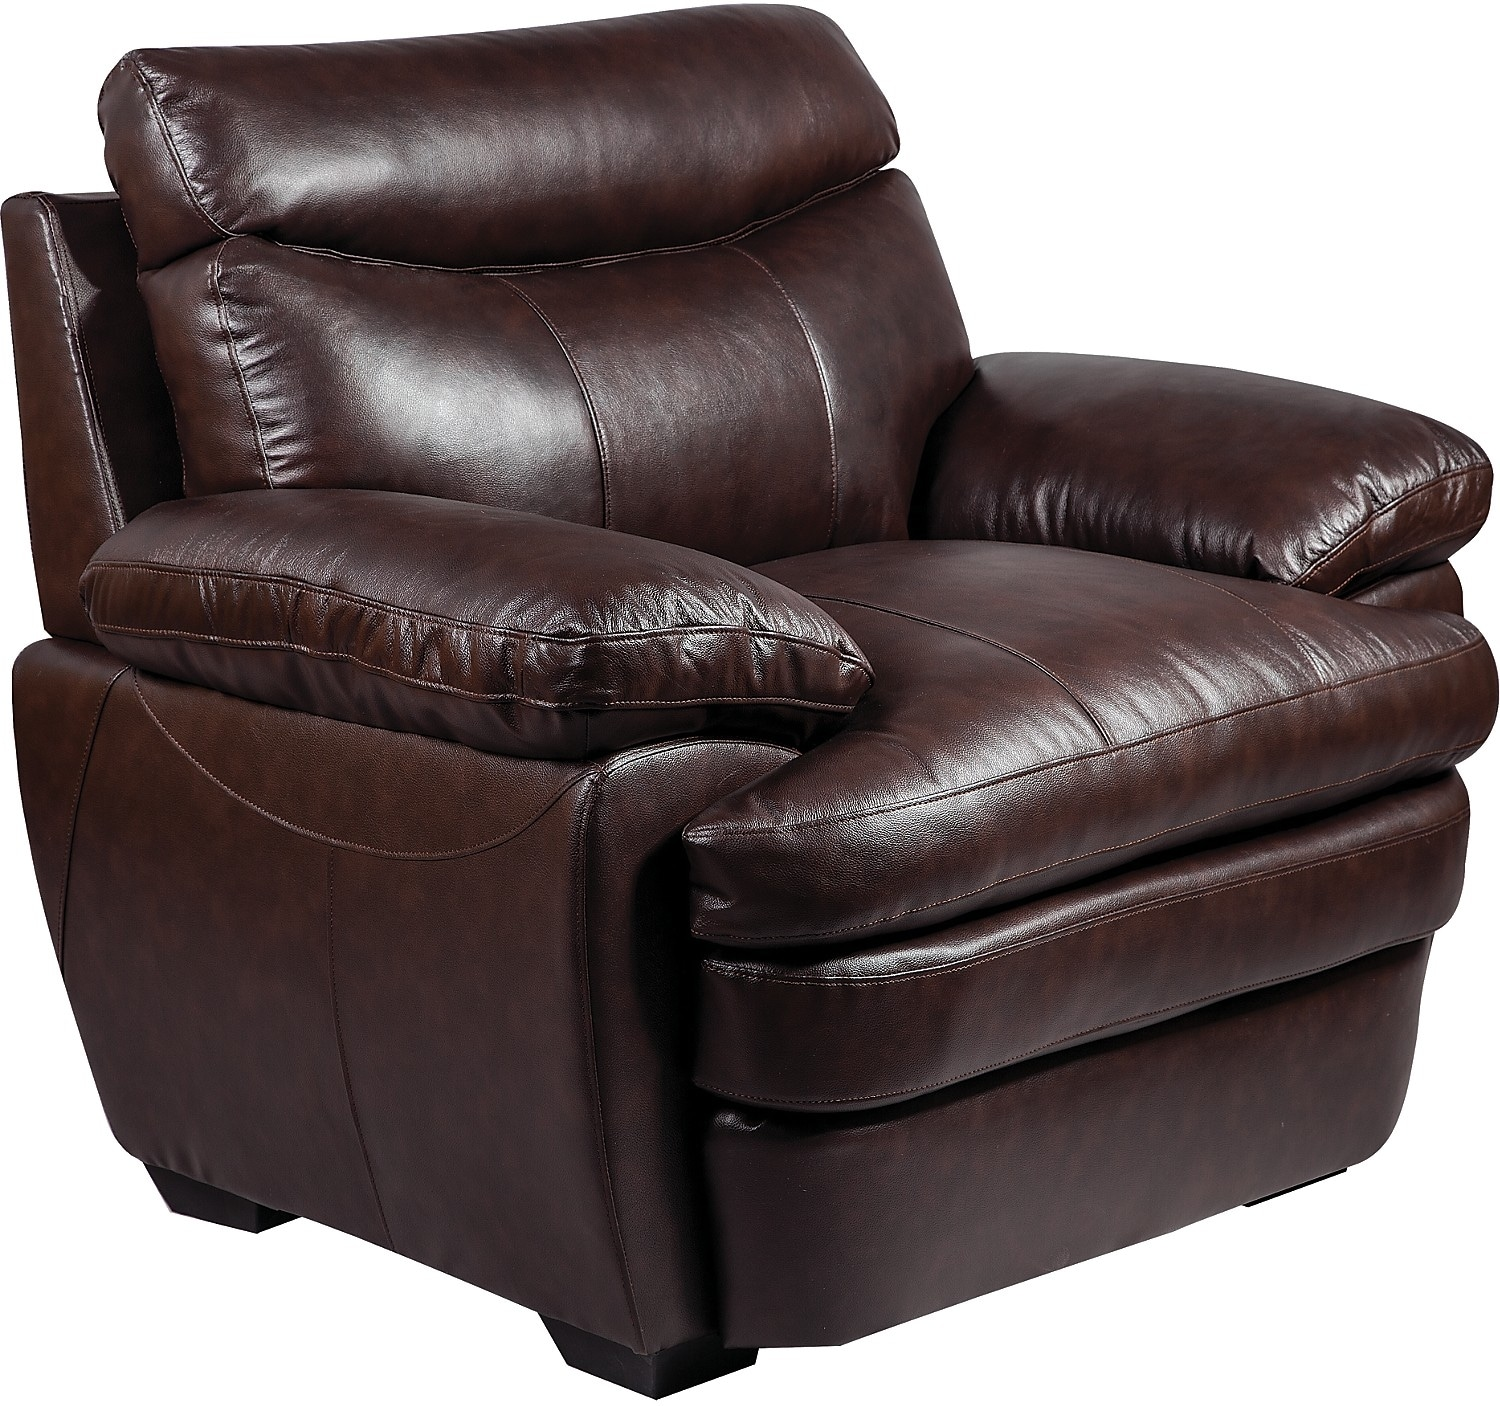 Marty Genuine Leather Chair  Brown  The Brick